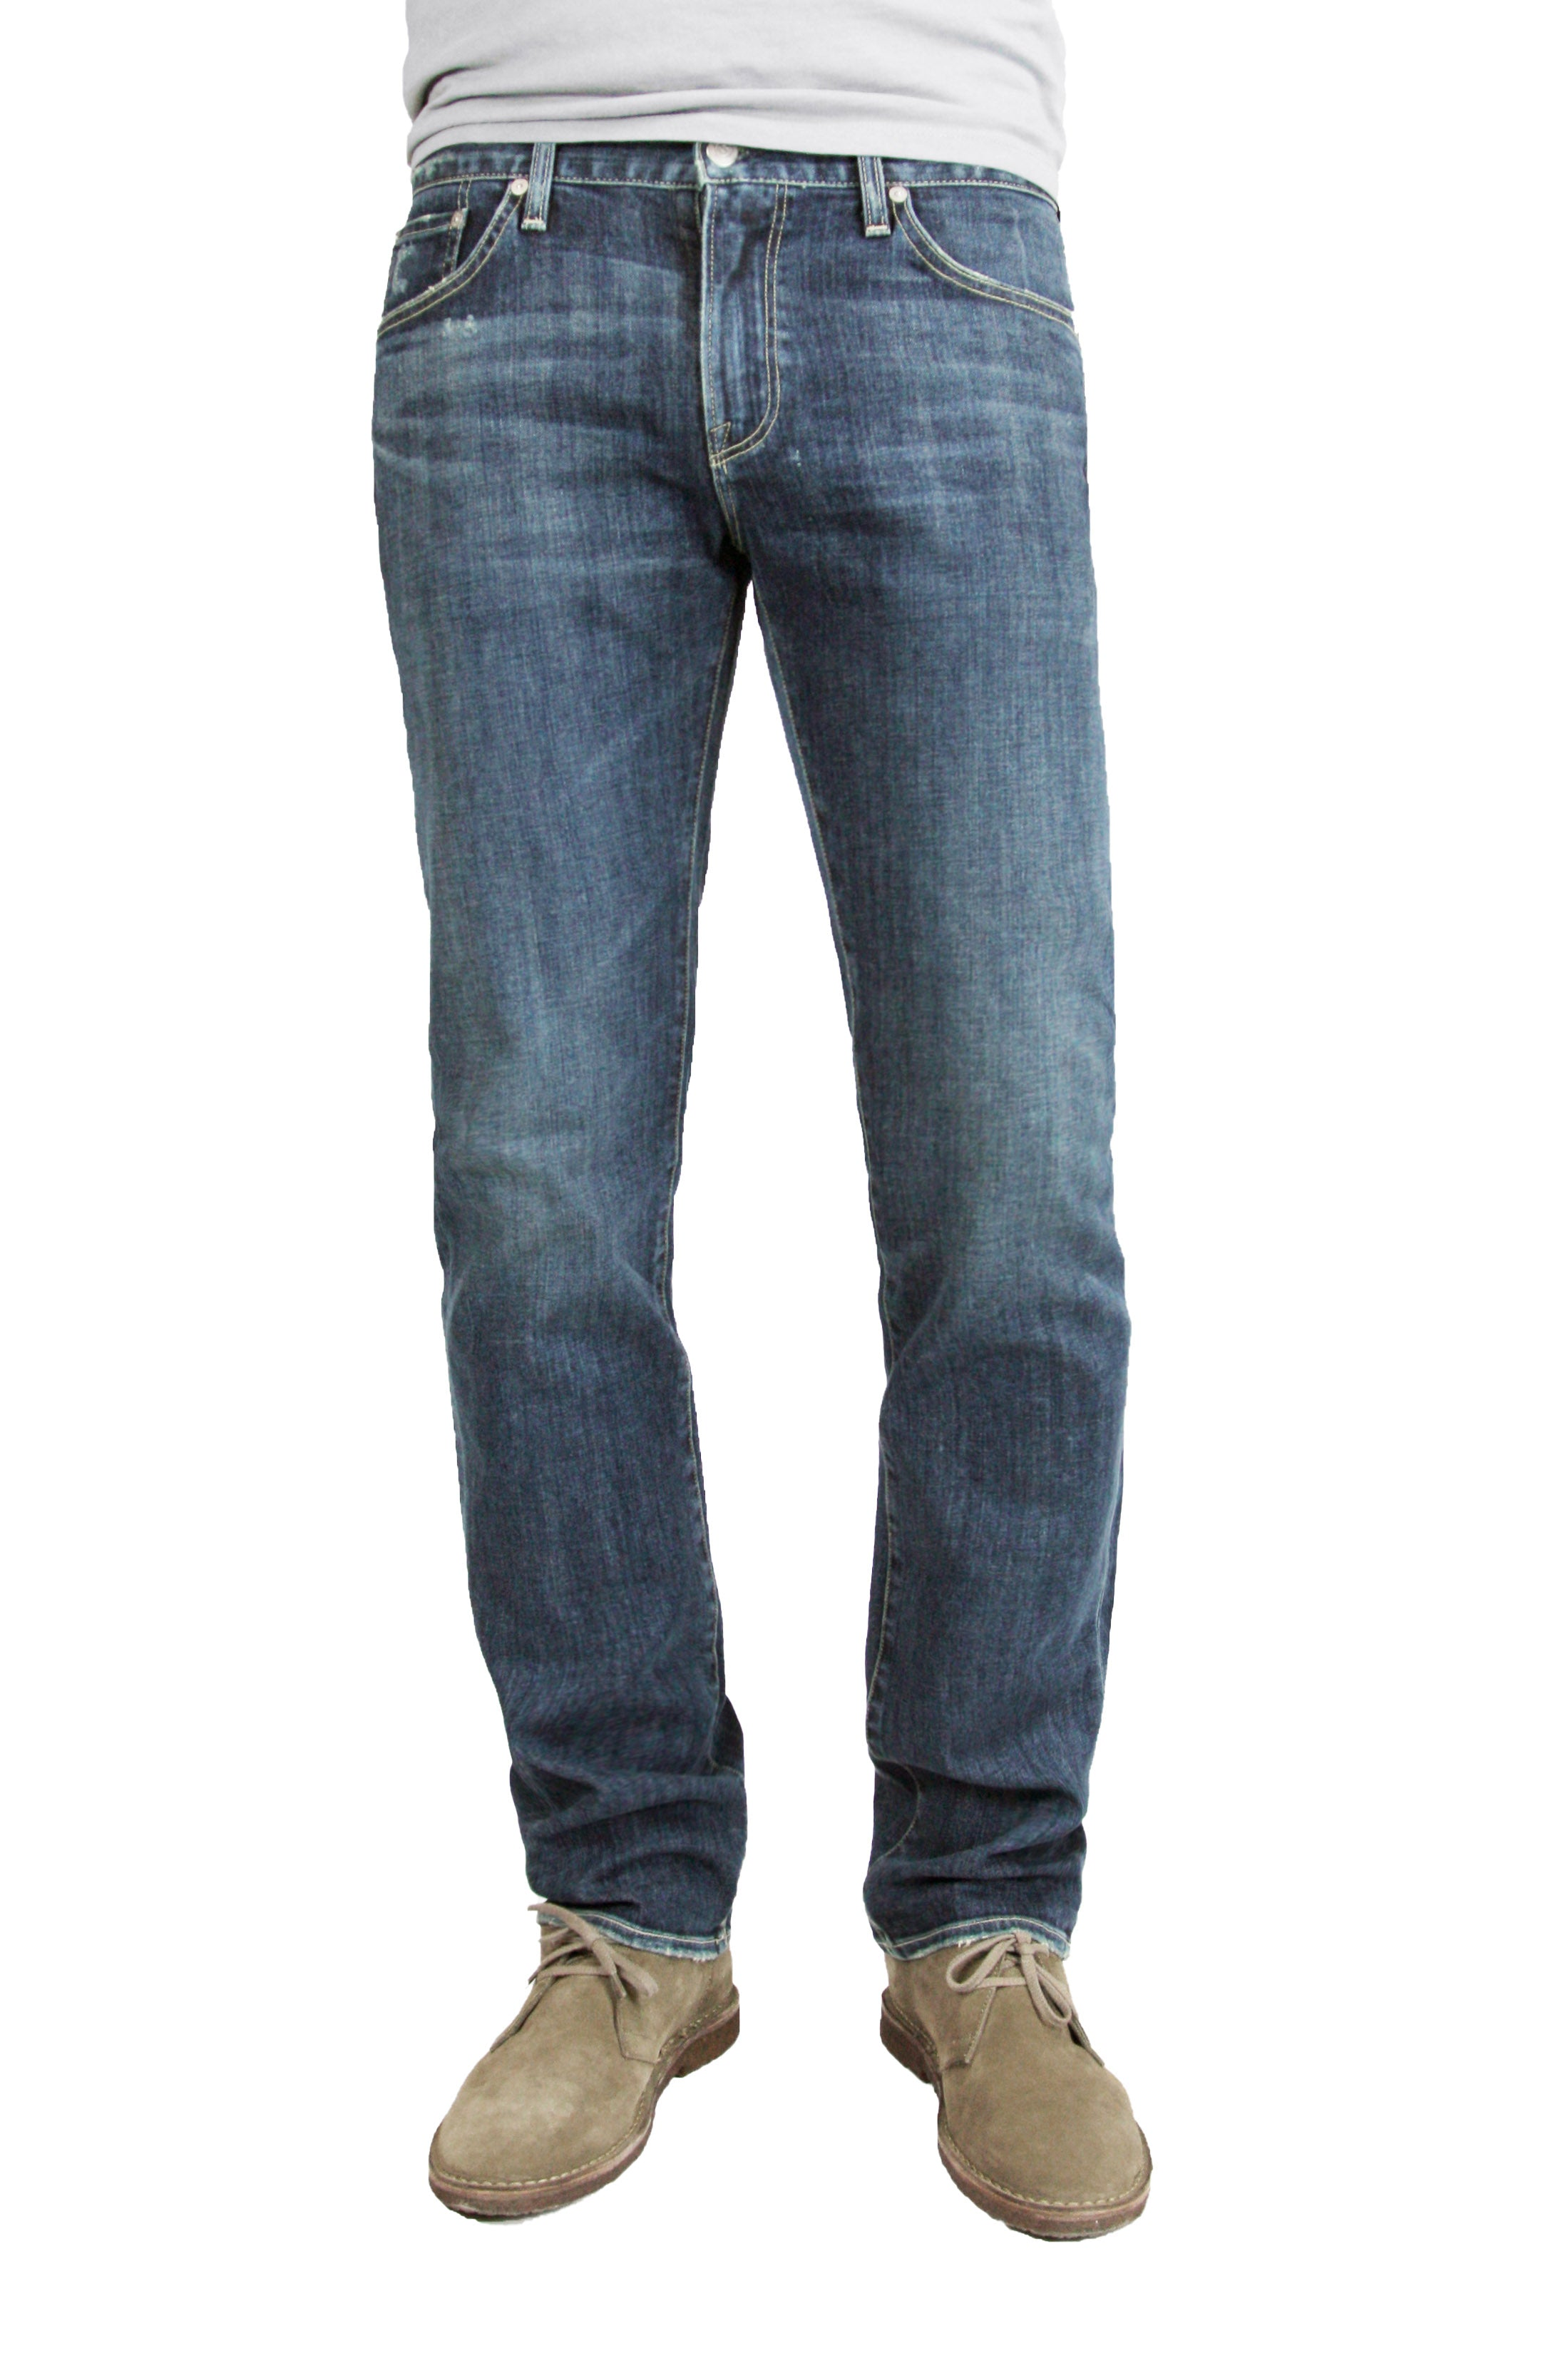 S.M.N Studio's Bond in Odyssey men's jeans. A slim straight jean made in comfortable stretch pure indigo dyed Japanese denim in a dark blue color with contrasting fades and whiskering for a vintage wash.